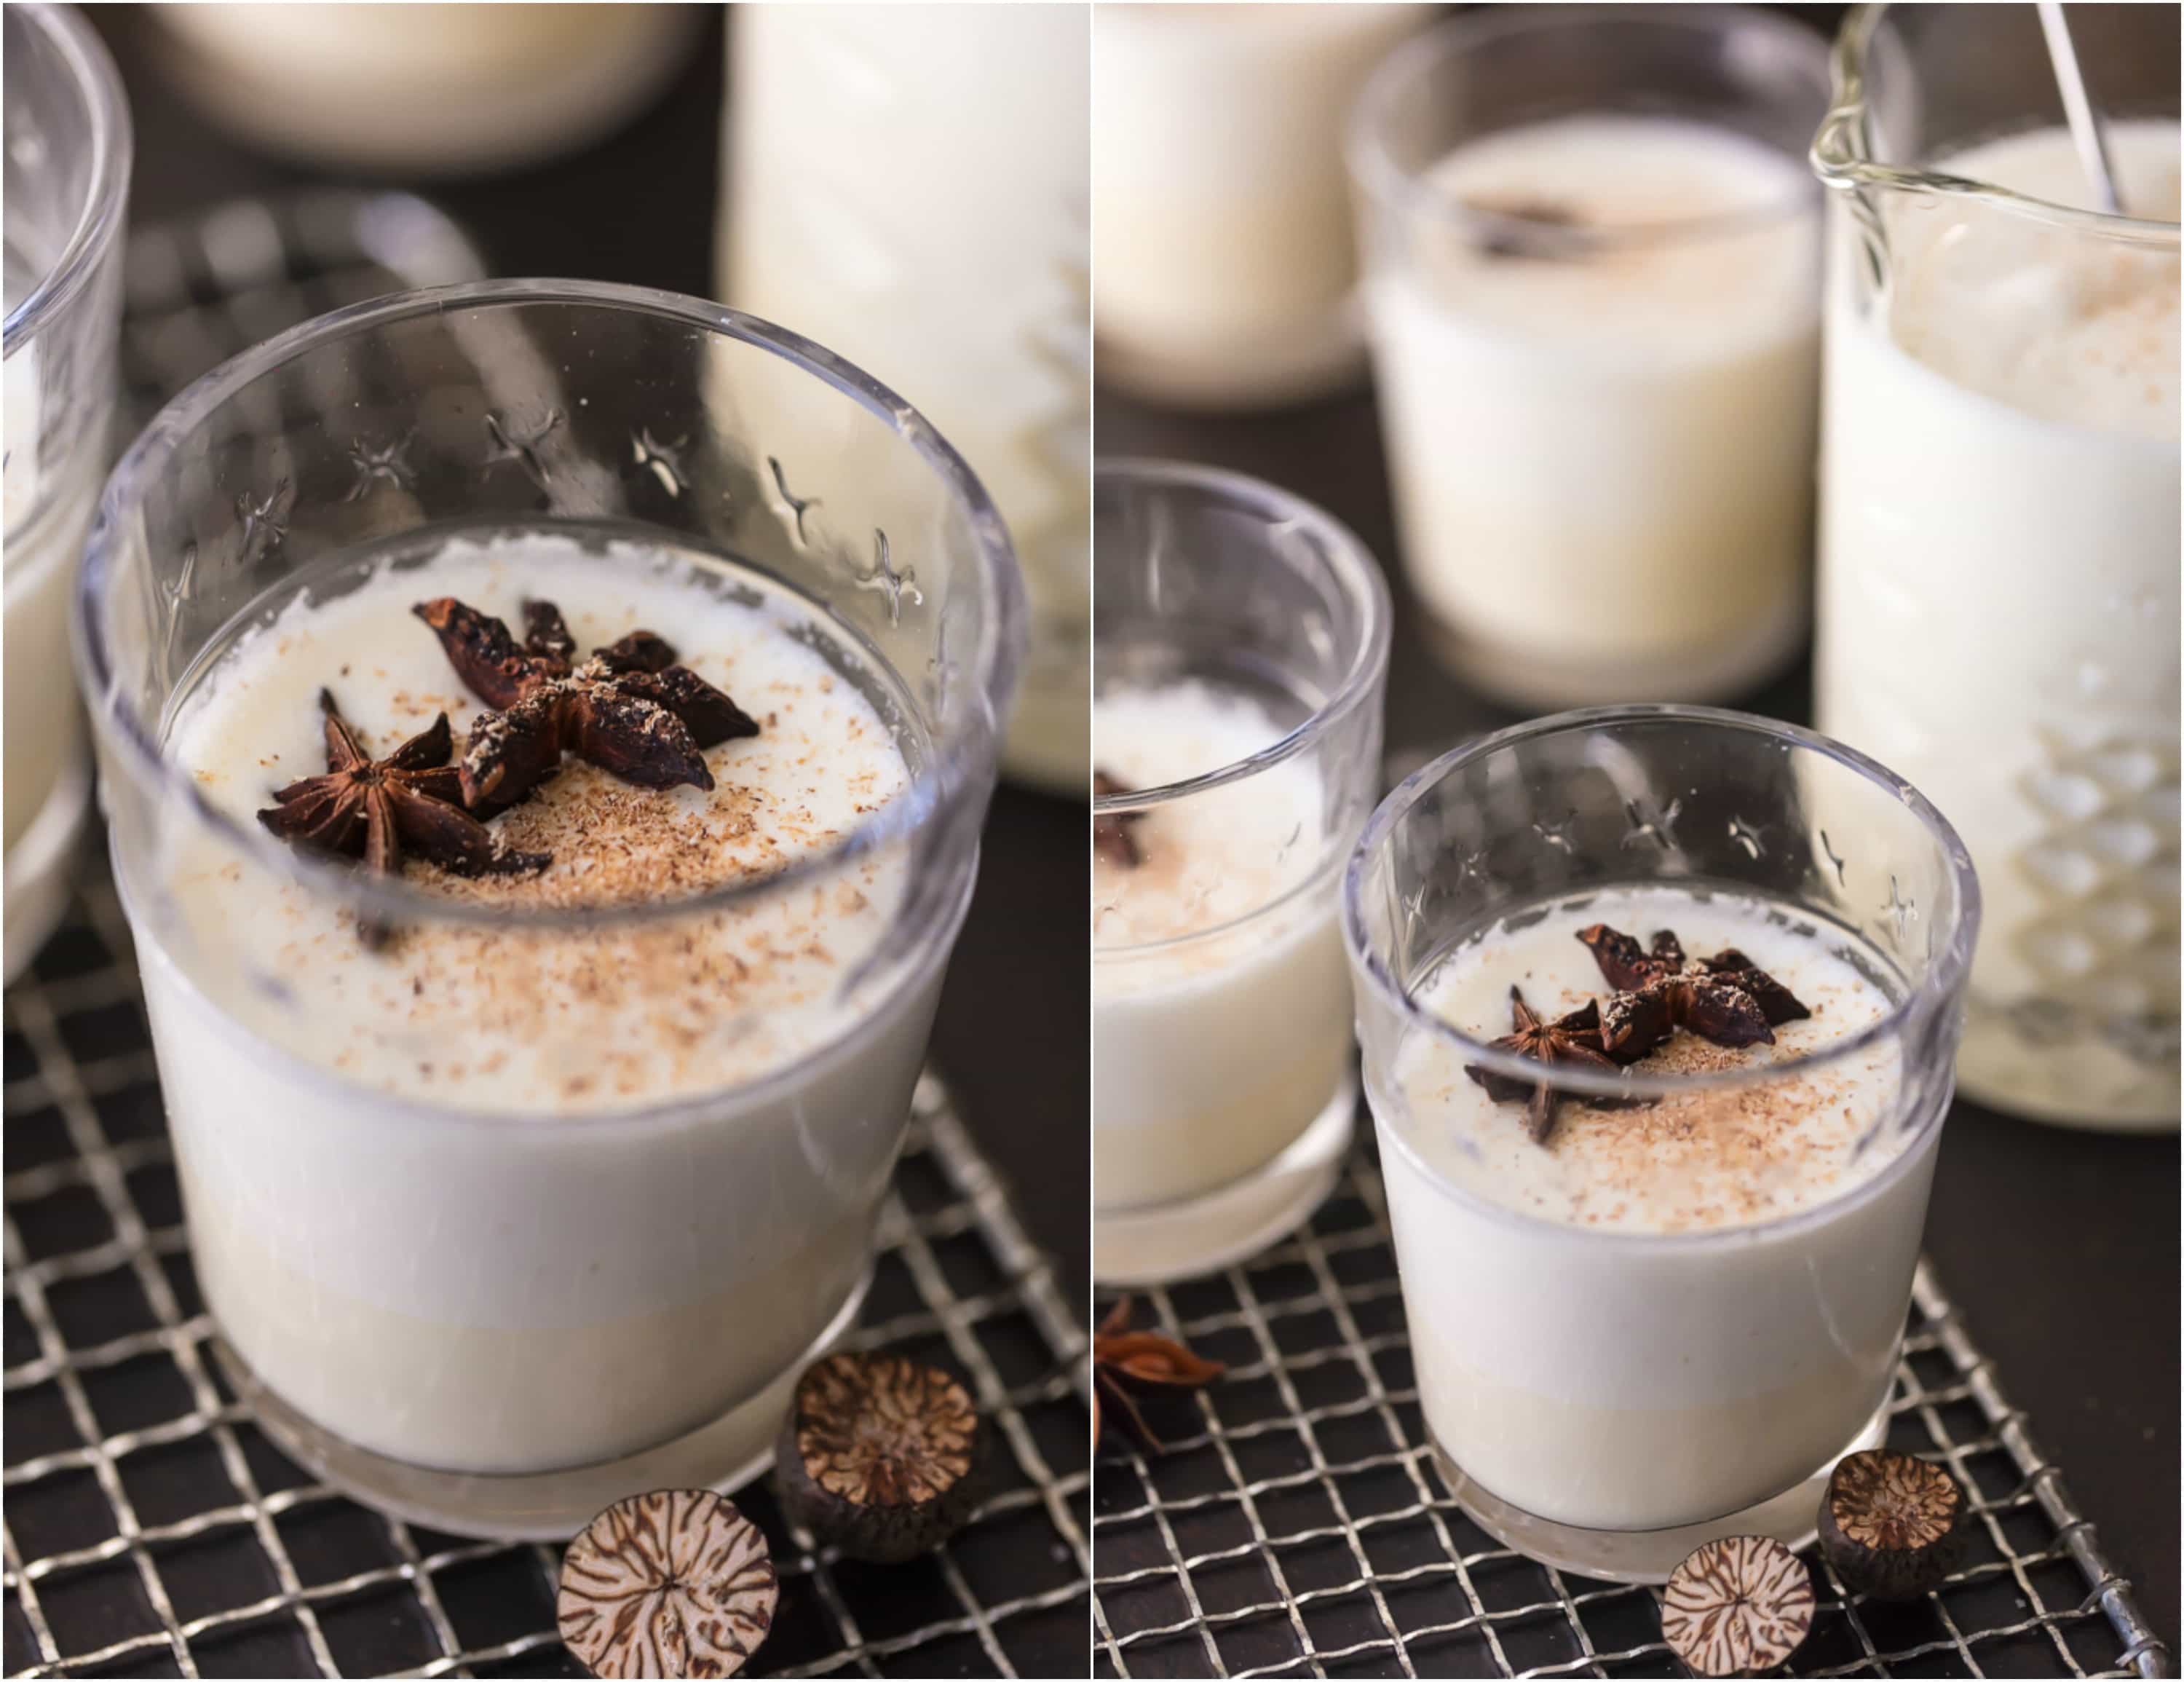 photo collage of glasses of homemade traditional eggnog with star anise floating in the glasses